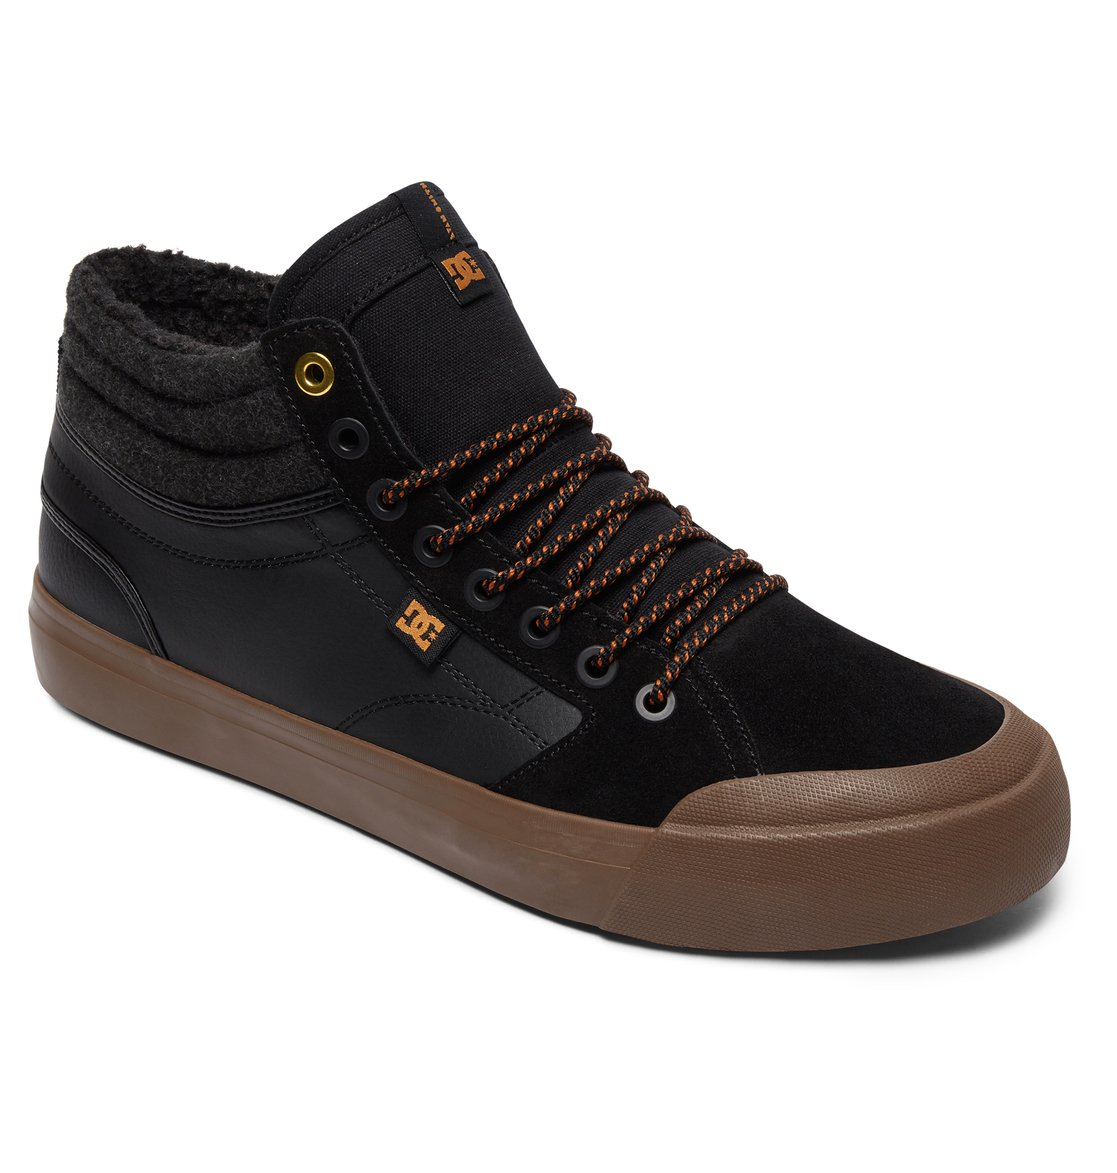 DC Shoes Online include DC Sneaker, DC Skate Shoes, DC High Top, DC Boots, Clothing Sale: DC T-Shirts, DC Hoodies, DC Sweatshirts, DC Shirts, DC Jackets, DC Pants, DC Jeans, DC Shorts, DC Hats and DC Backpack on Sale.